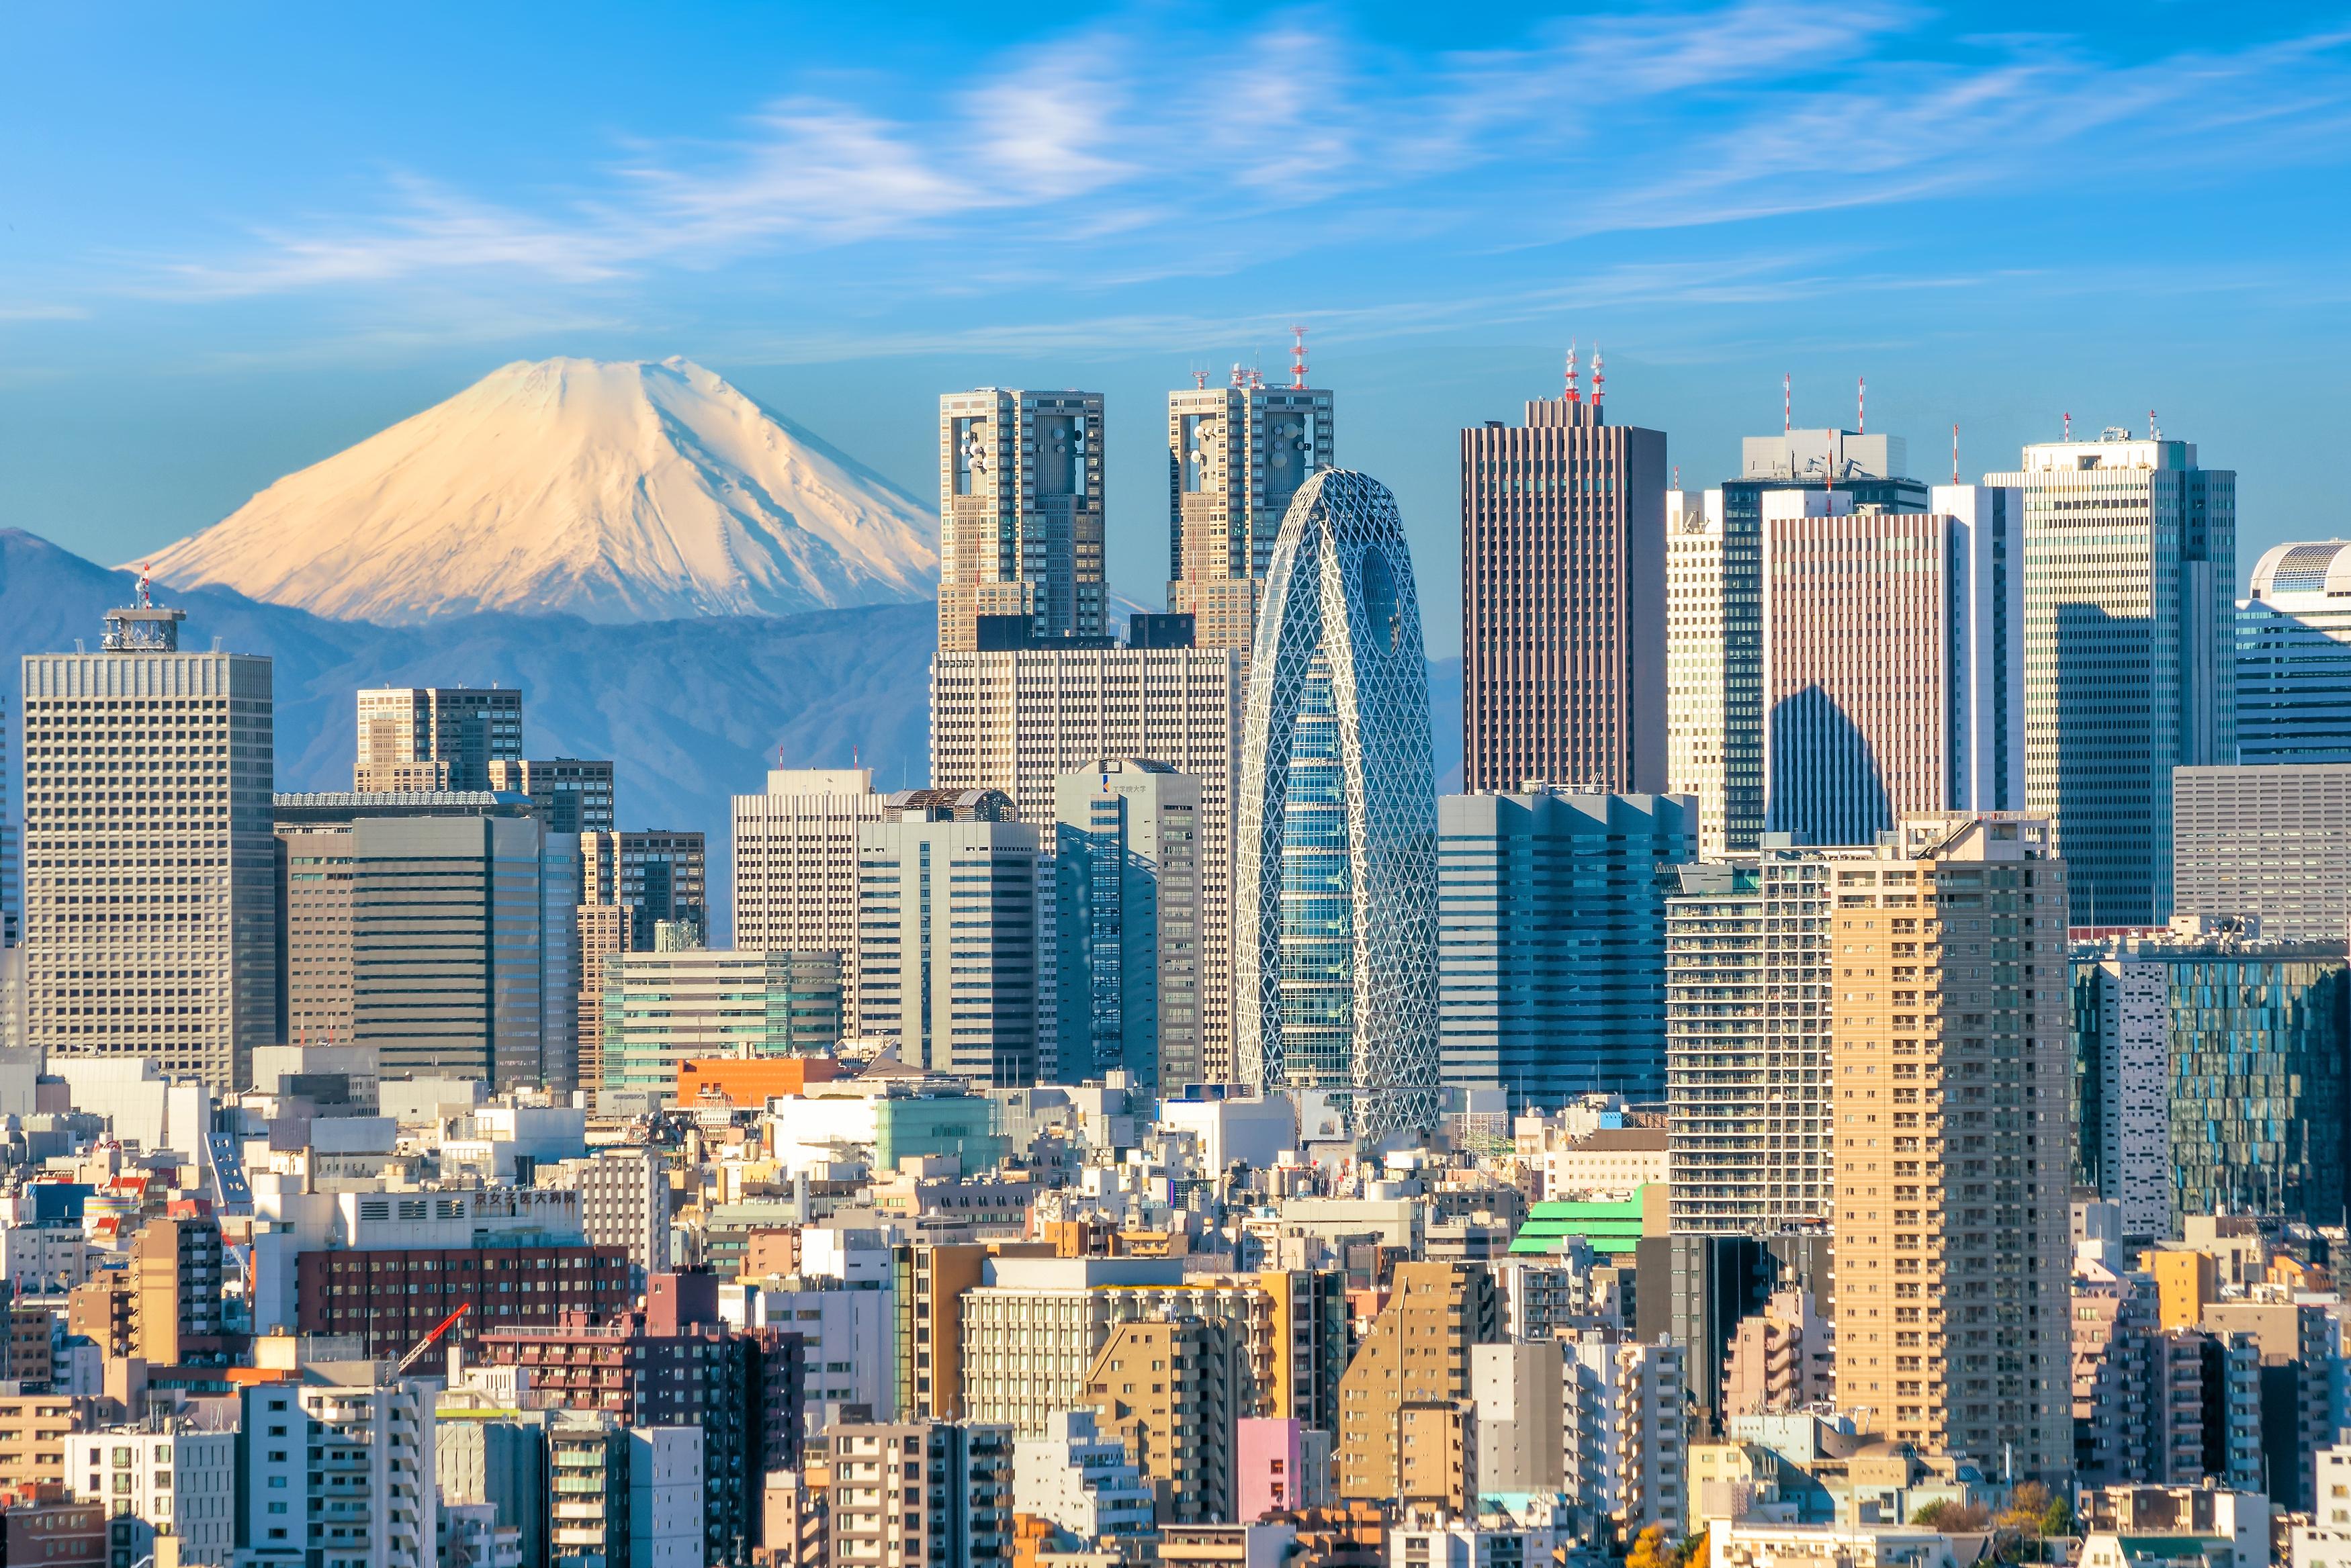 Mount Fuji watches over the Tokyo skyline. SHUTTERSTOCK